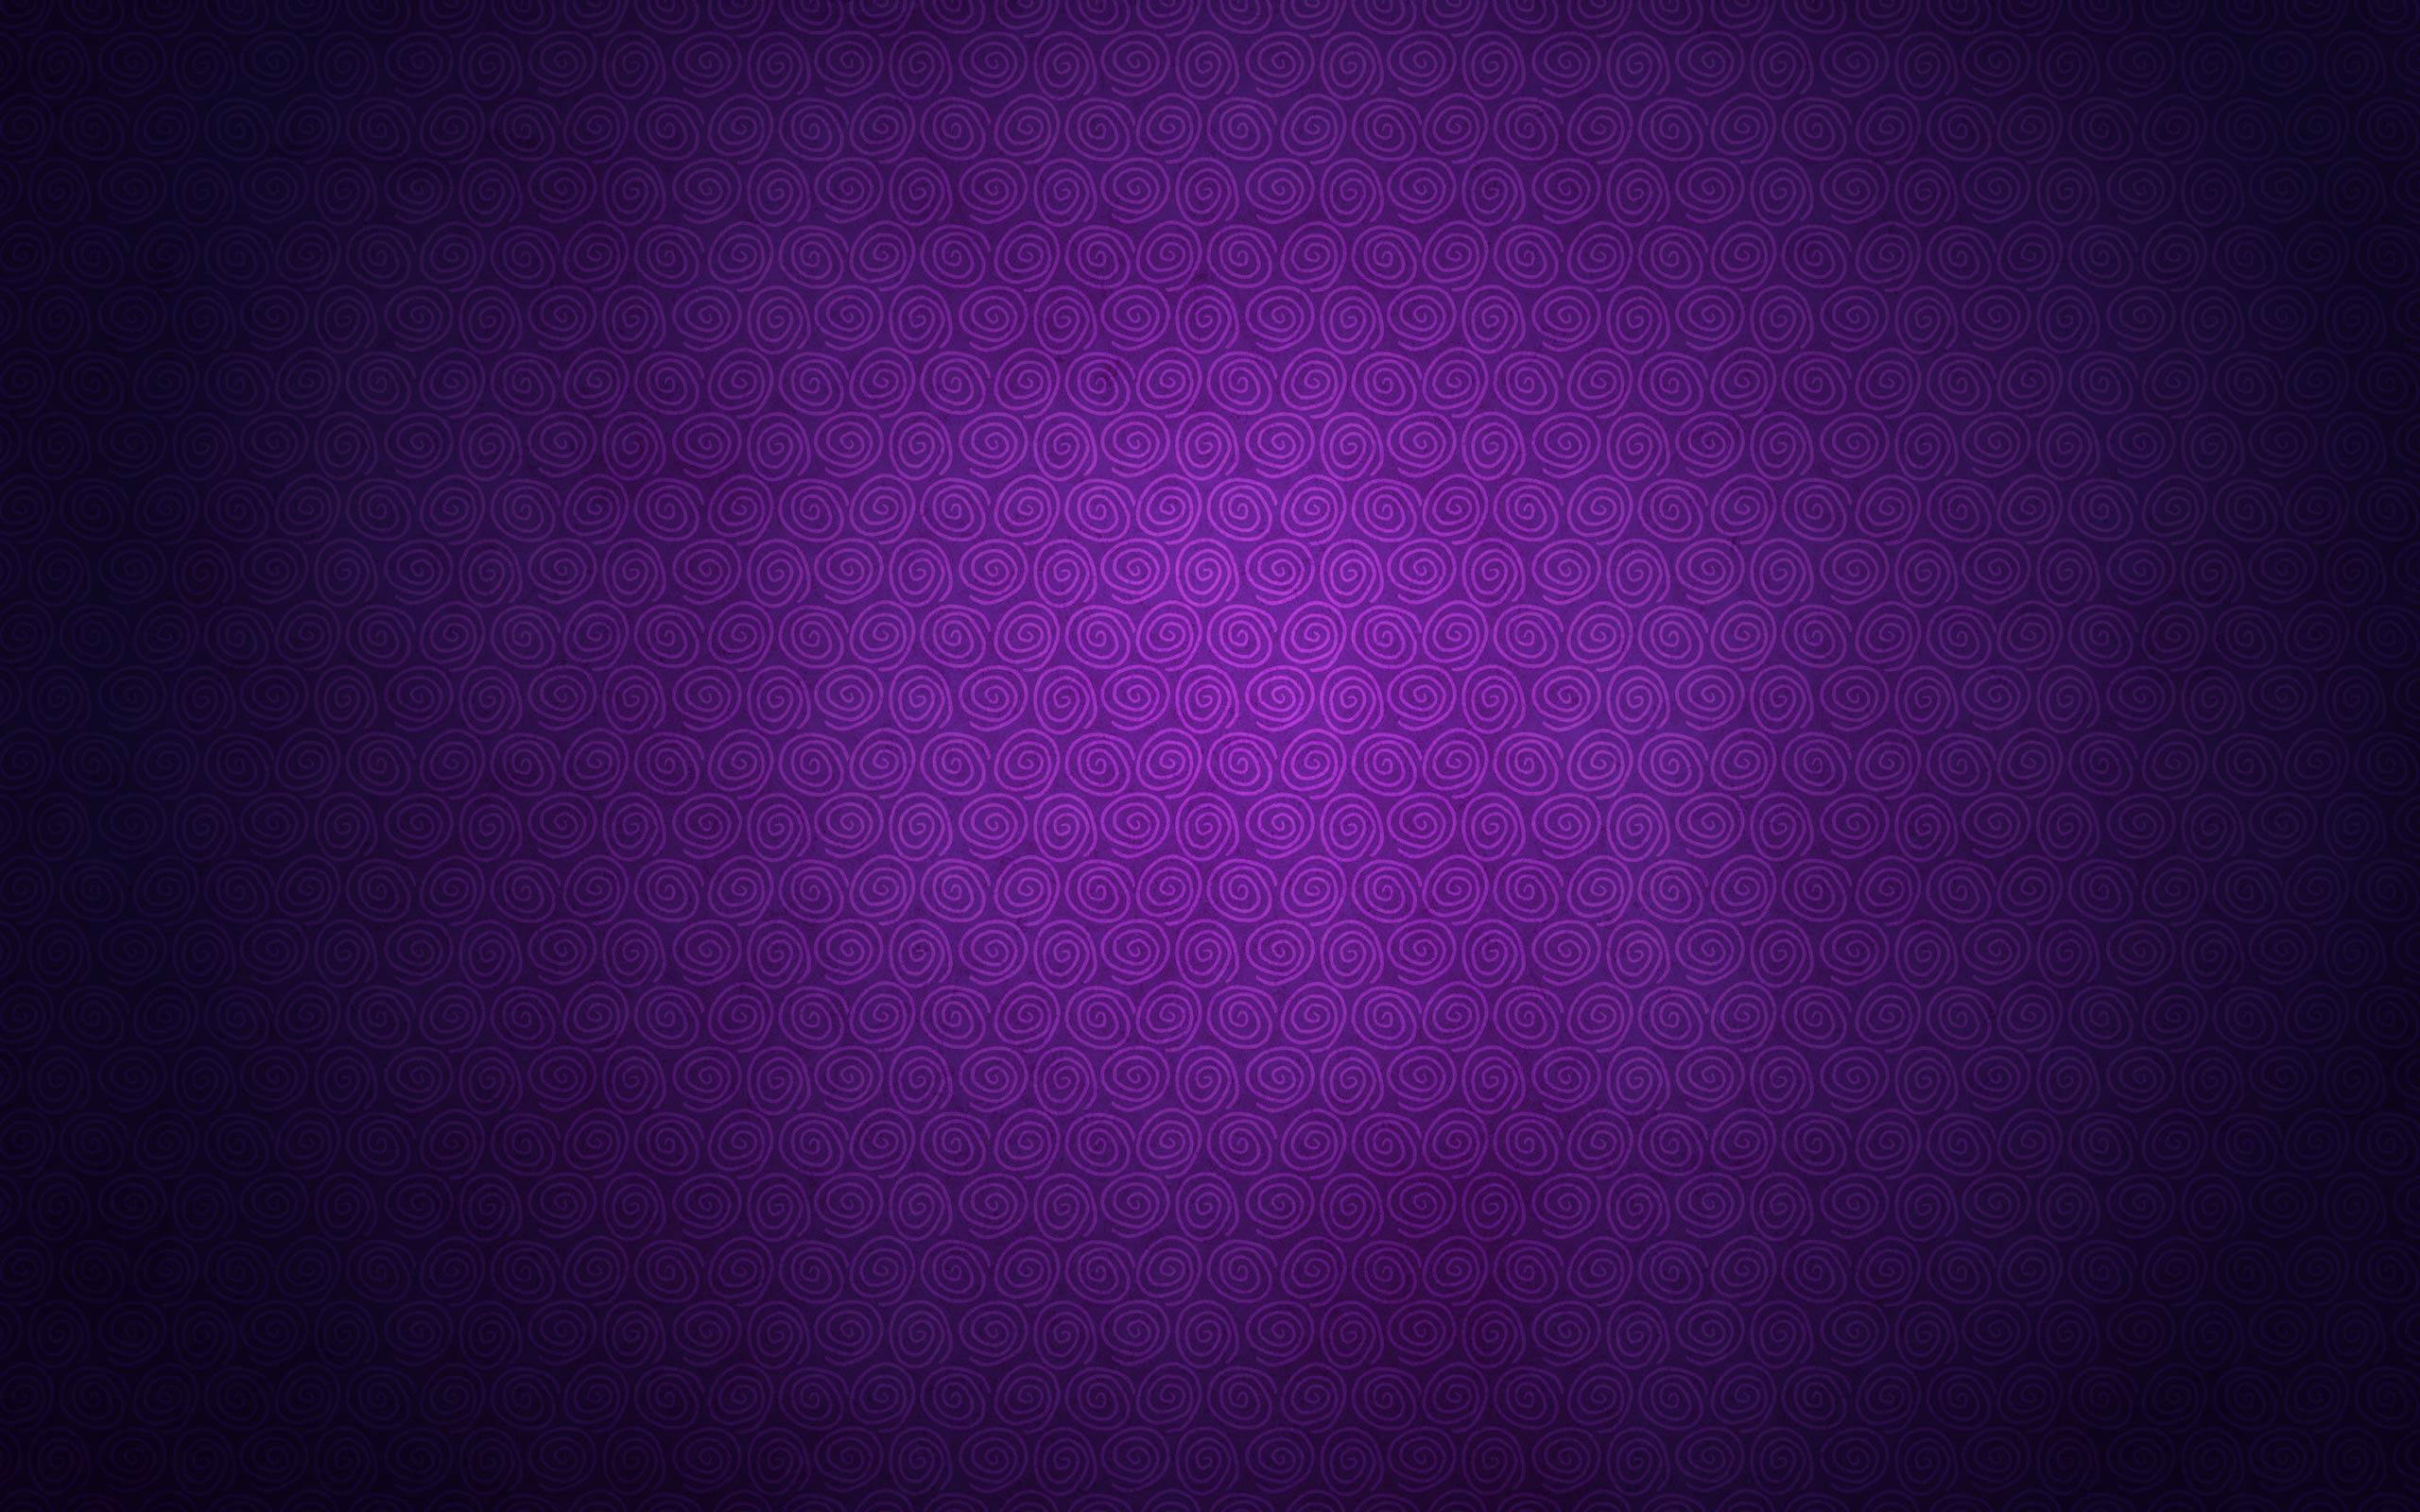 Free Purple Wallpaper Backgrounds - Wallpaper Cave